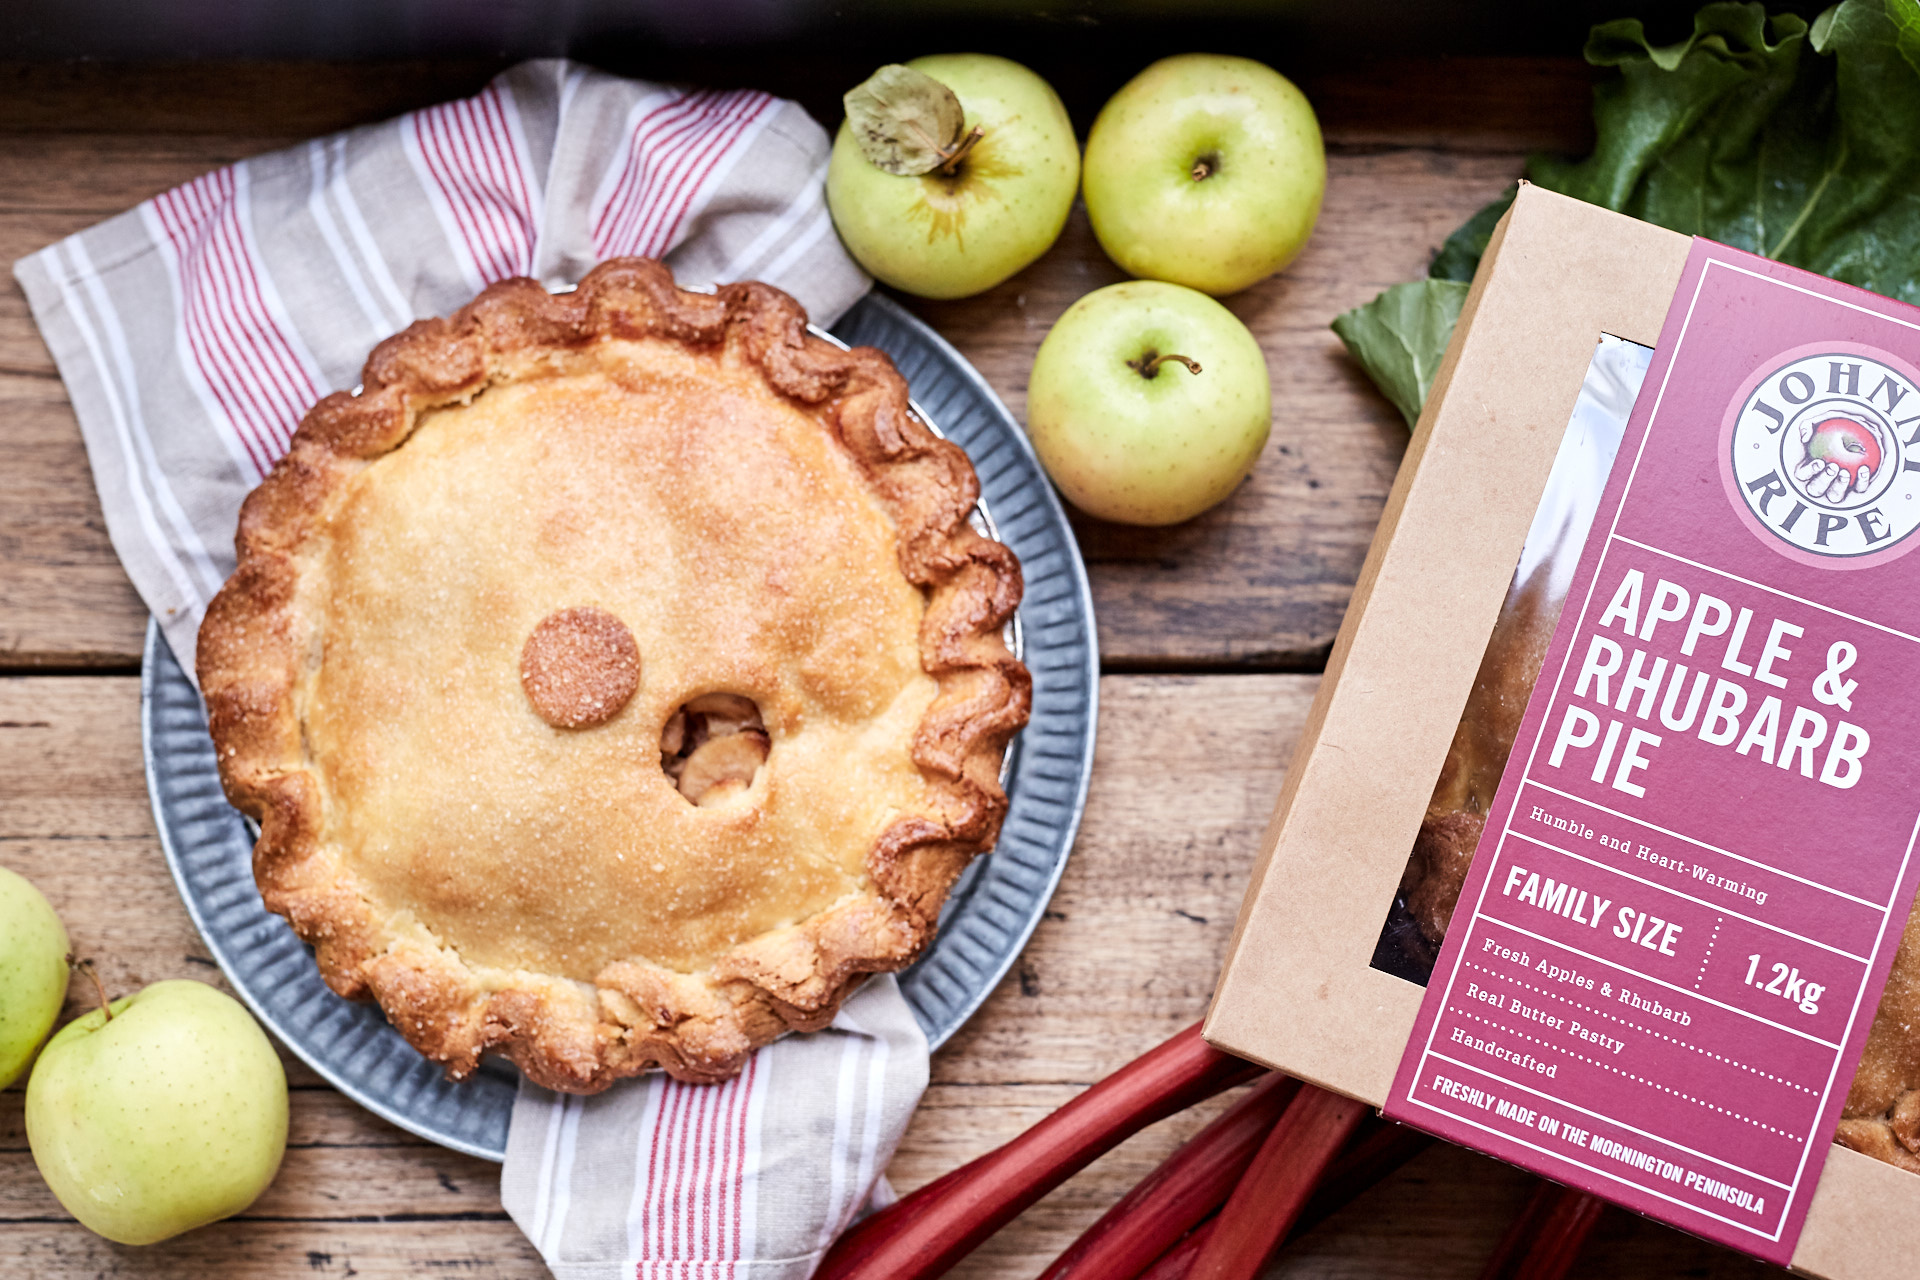 Johnny Ripe_Family Pie - Apple and Rhubarb- 55696.jpg